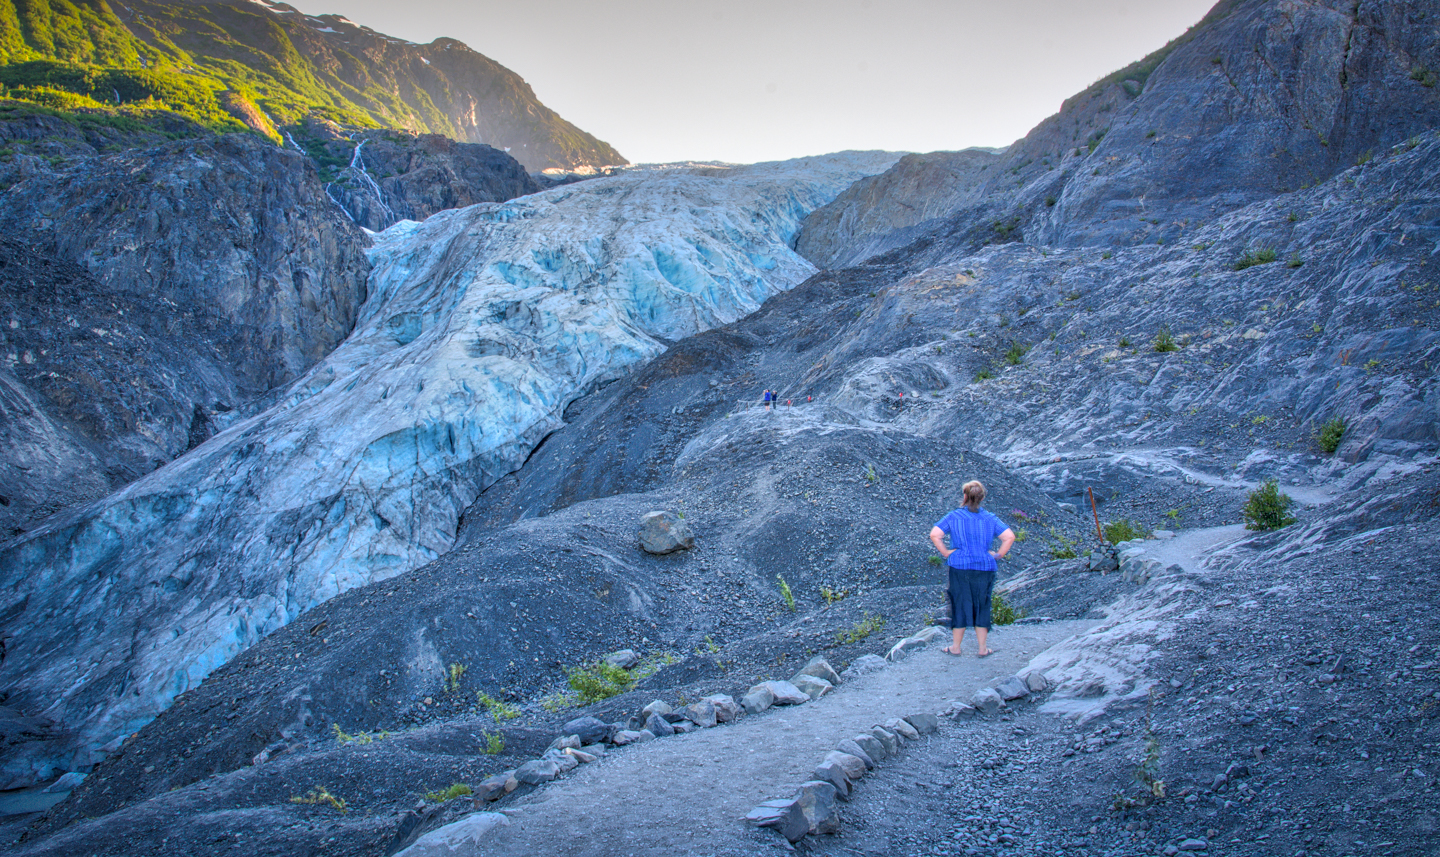 exit glacier and resurrection river day 33 34 july 20 21 don